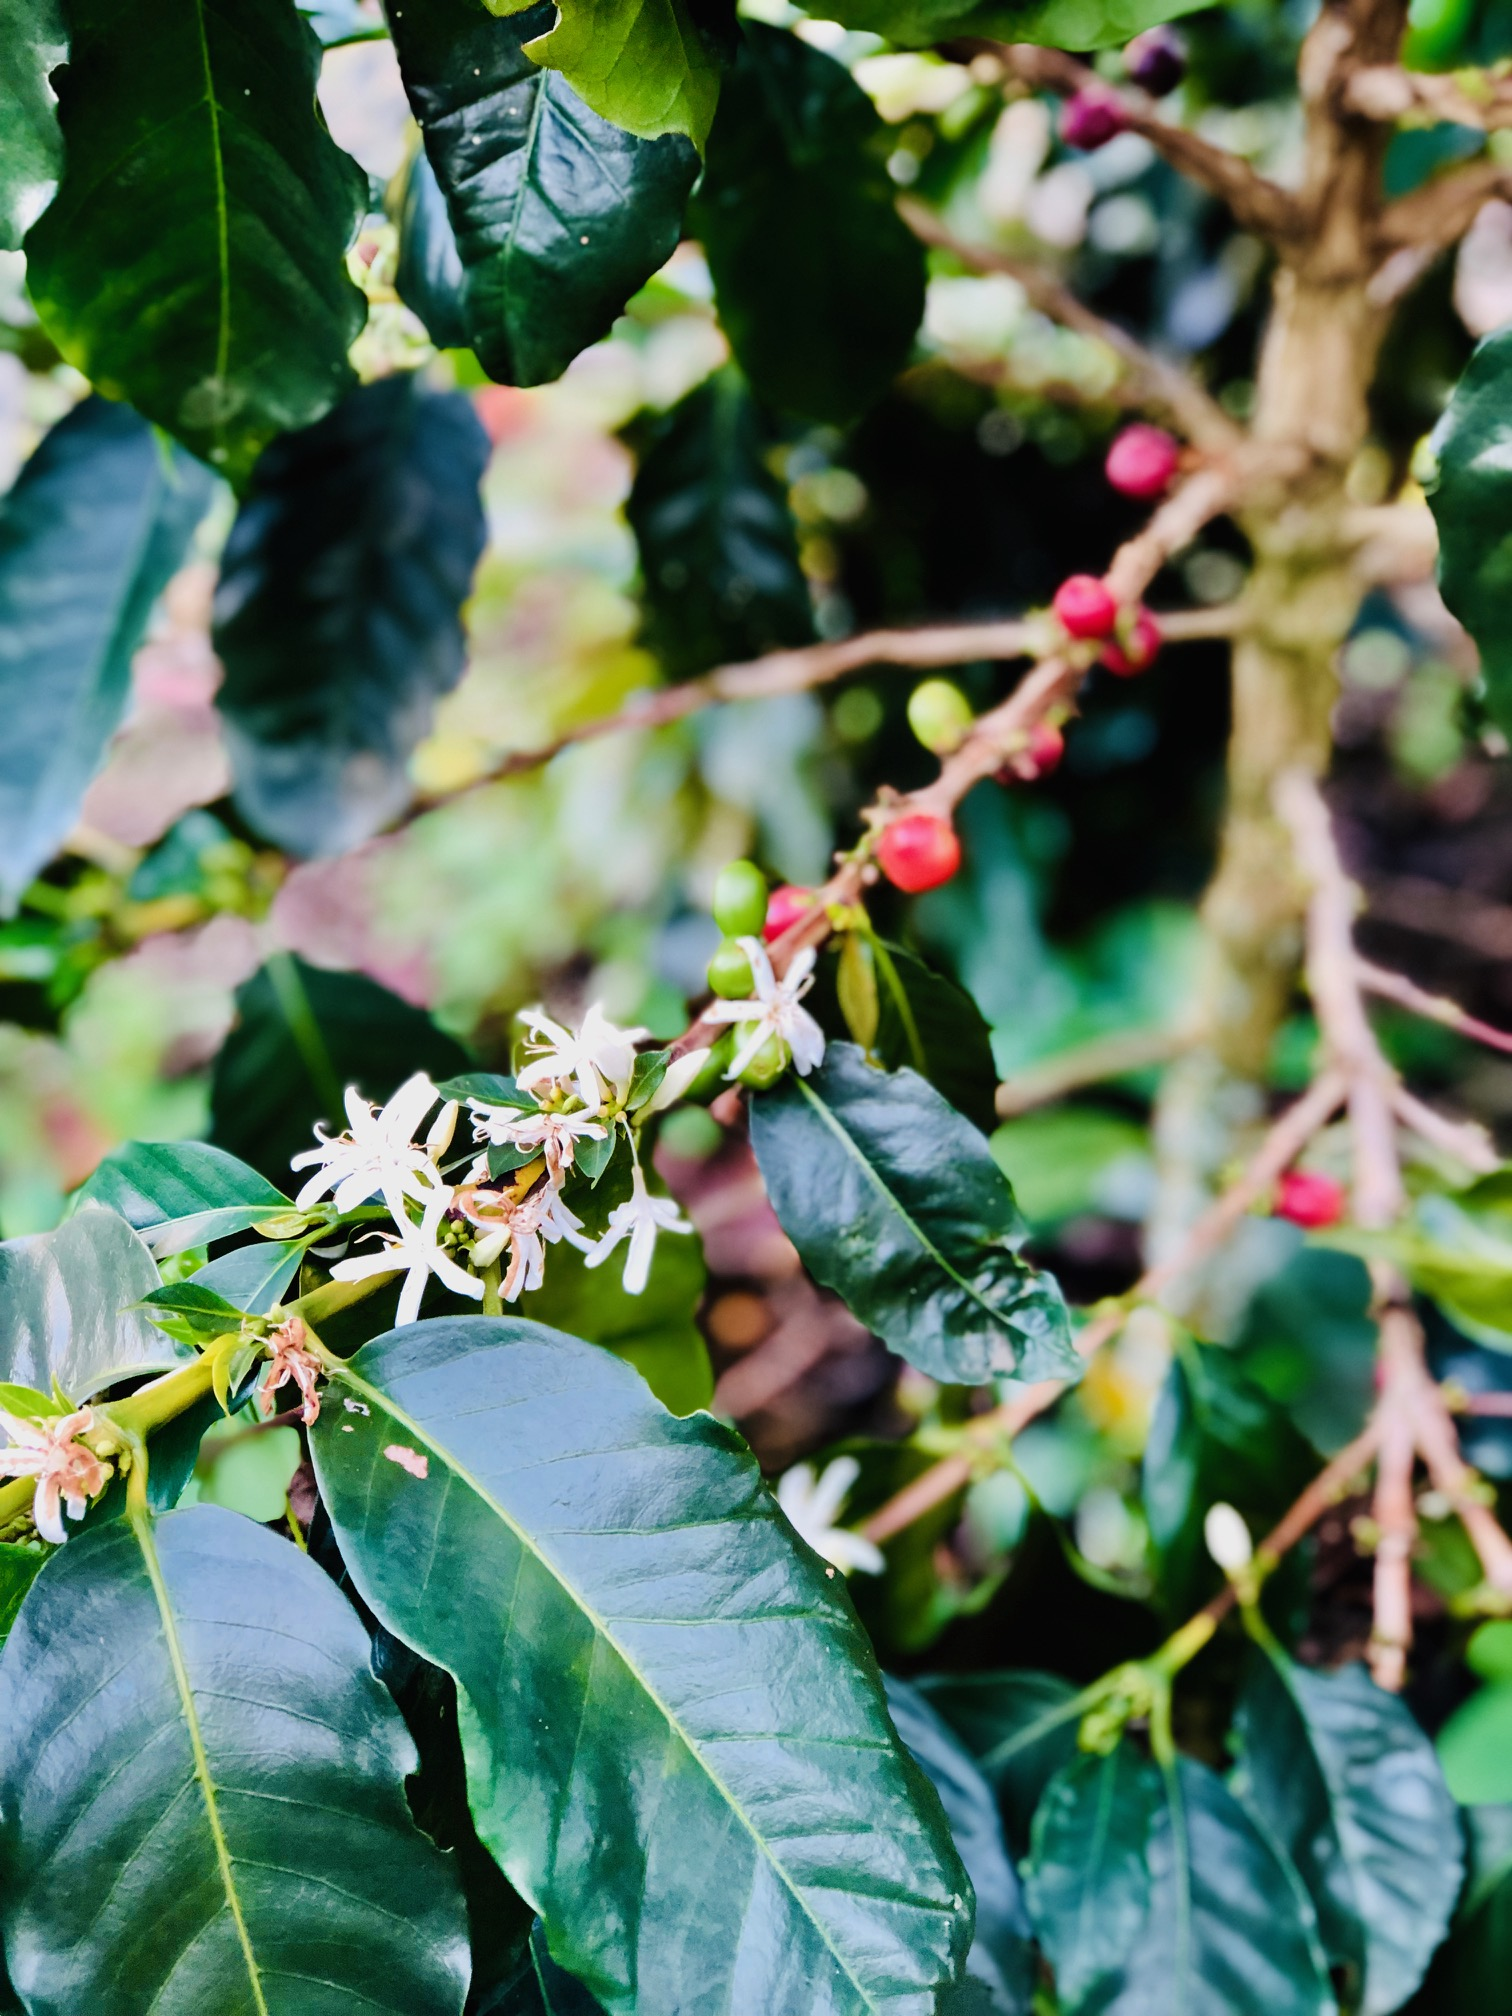 Endemic plant: COFFEE COFFEE EVERYWHERE, Colombia 2019 (SMT.com)